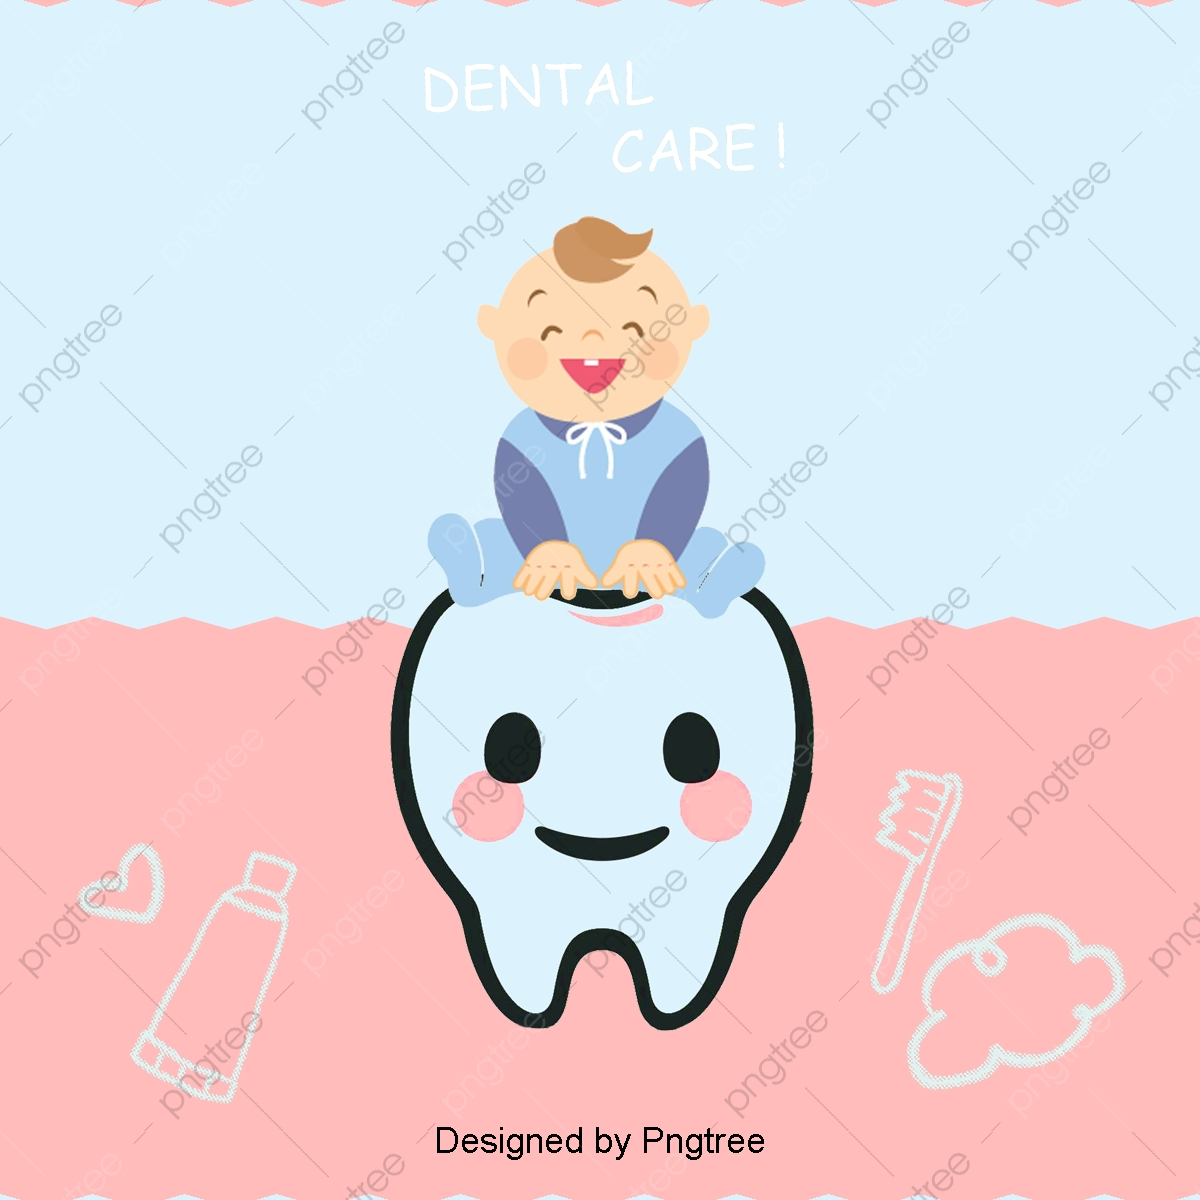 Cartoon Baby Teeth Cartoon Tooth Dentist Png Transparent Clipart Image And Psd File For Free Download